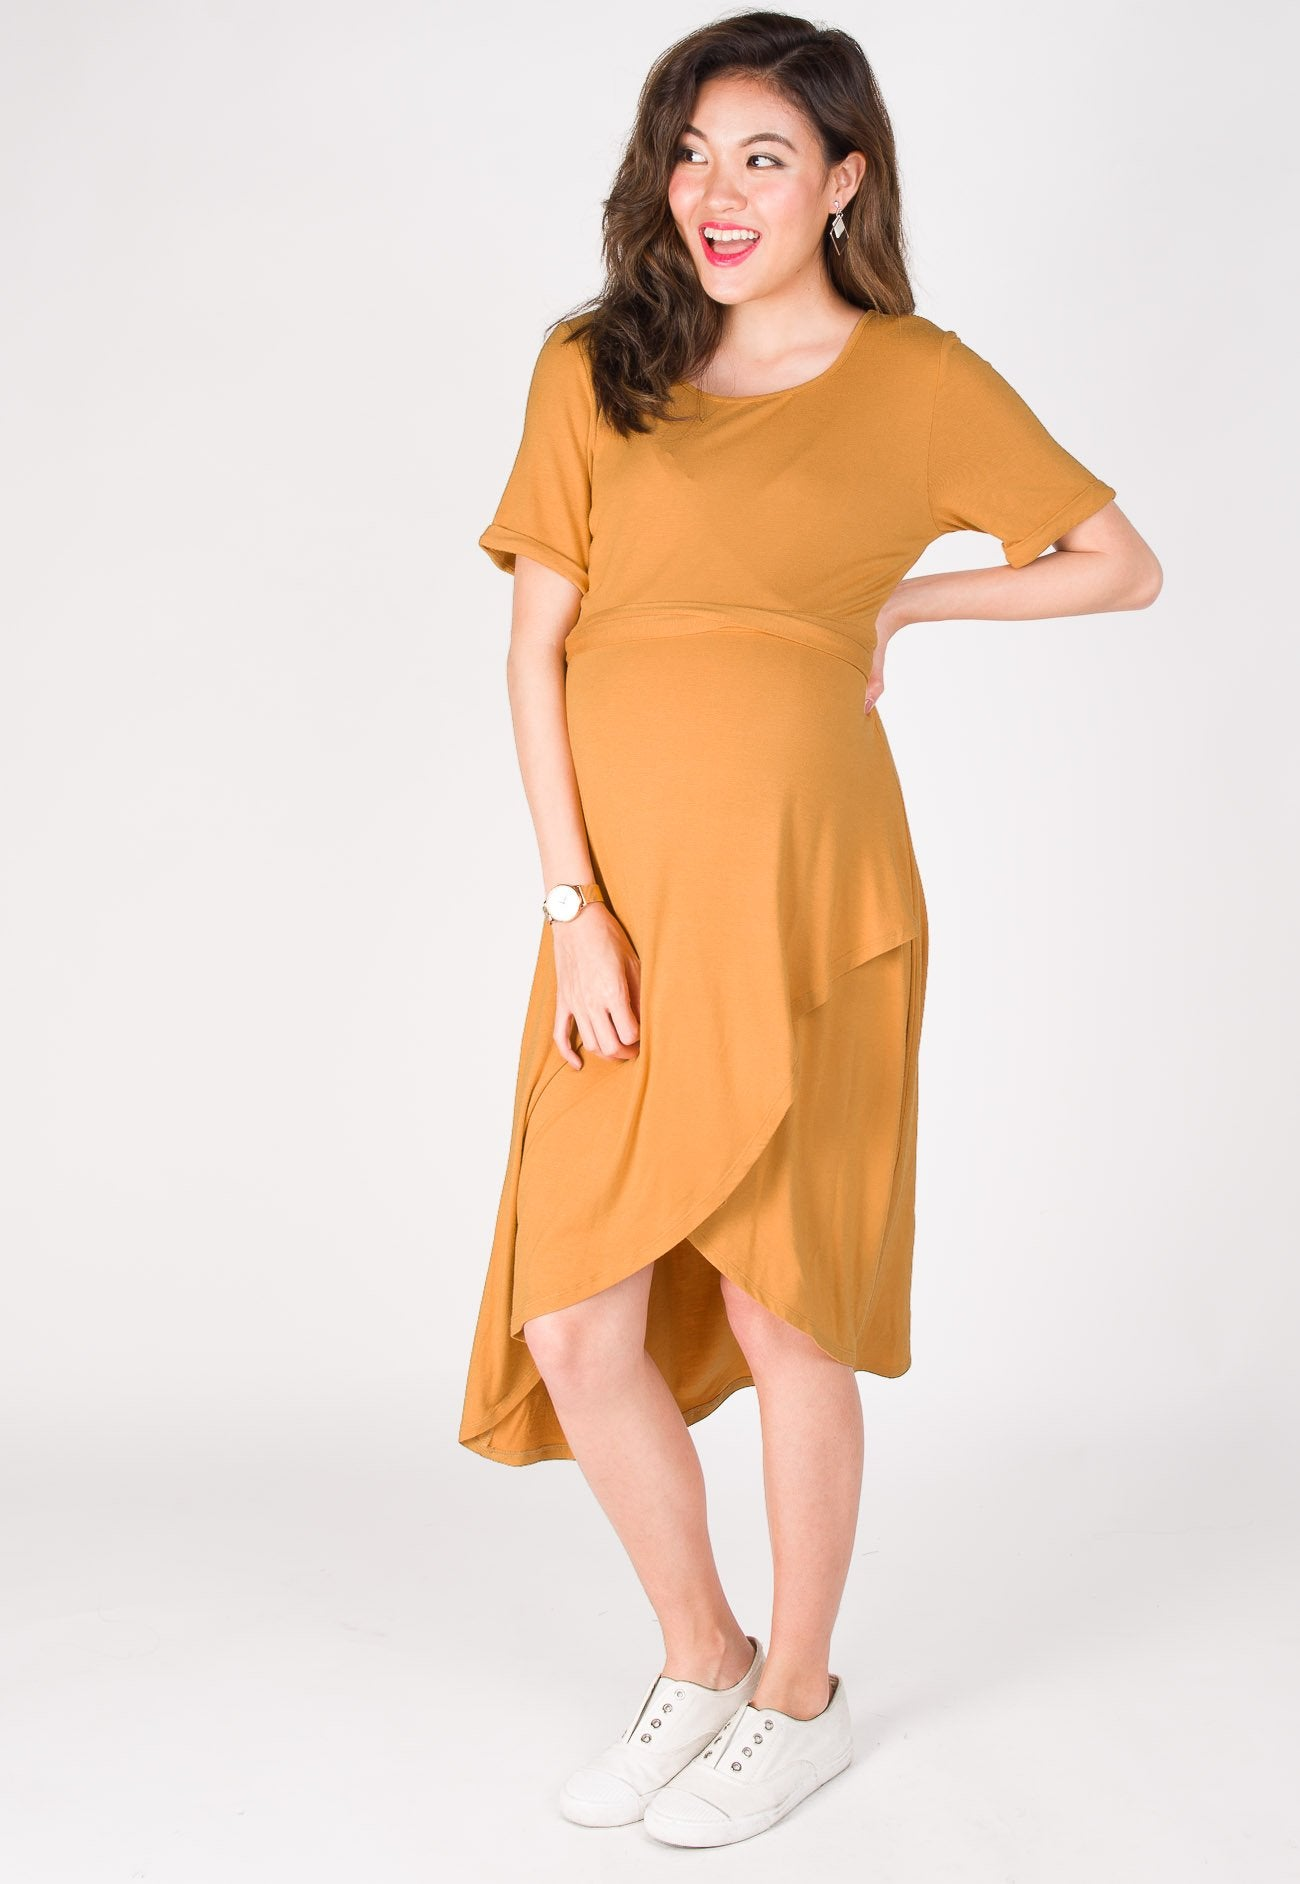 Belted Nursing Tee Shirtdress in Yellow  by Jump Eat Cry - Maternity and nursing wear